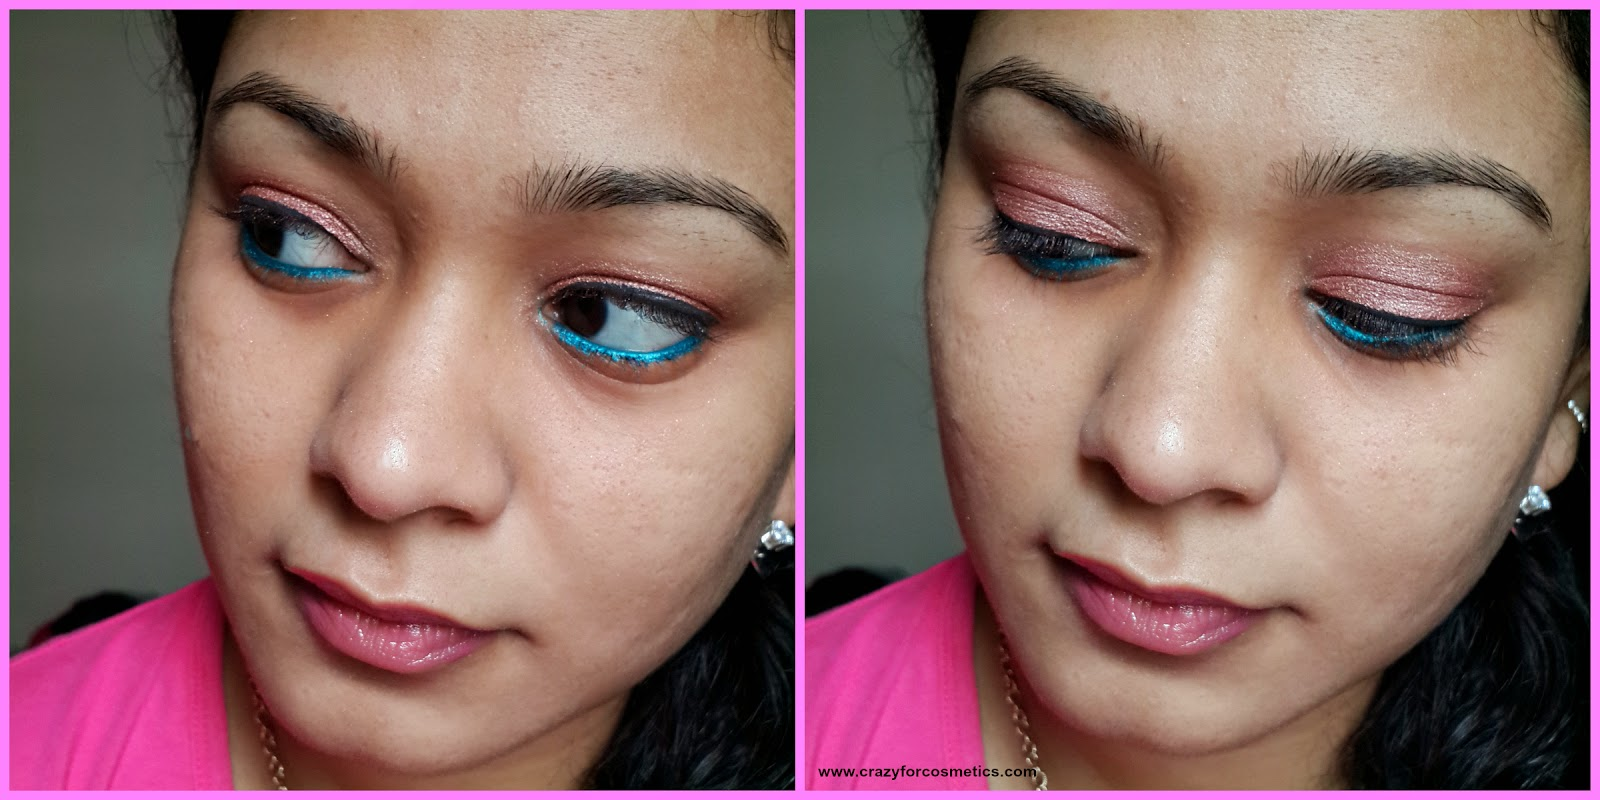 faces canada glam on mono eyeshadow in ruby quartz-faces canada glam on mono eyeshadow in ruby quartz review-faces canada glam on mono eyeshadow in ruby quartz swatches-faces canada glam on mono eyeshadow in ruby quartz India online-eyesadow for navrathri - festive makeup look